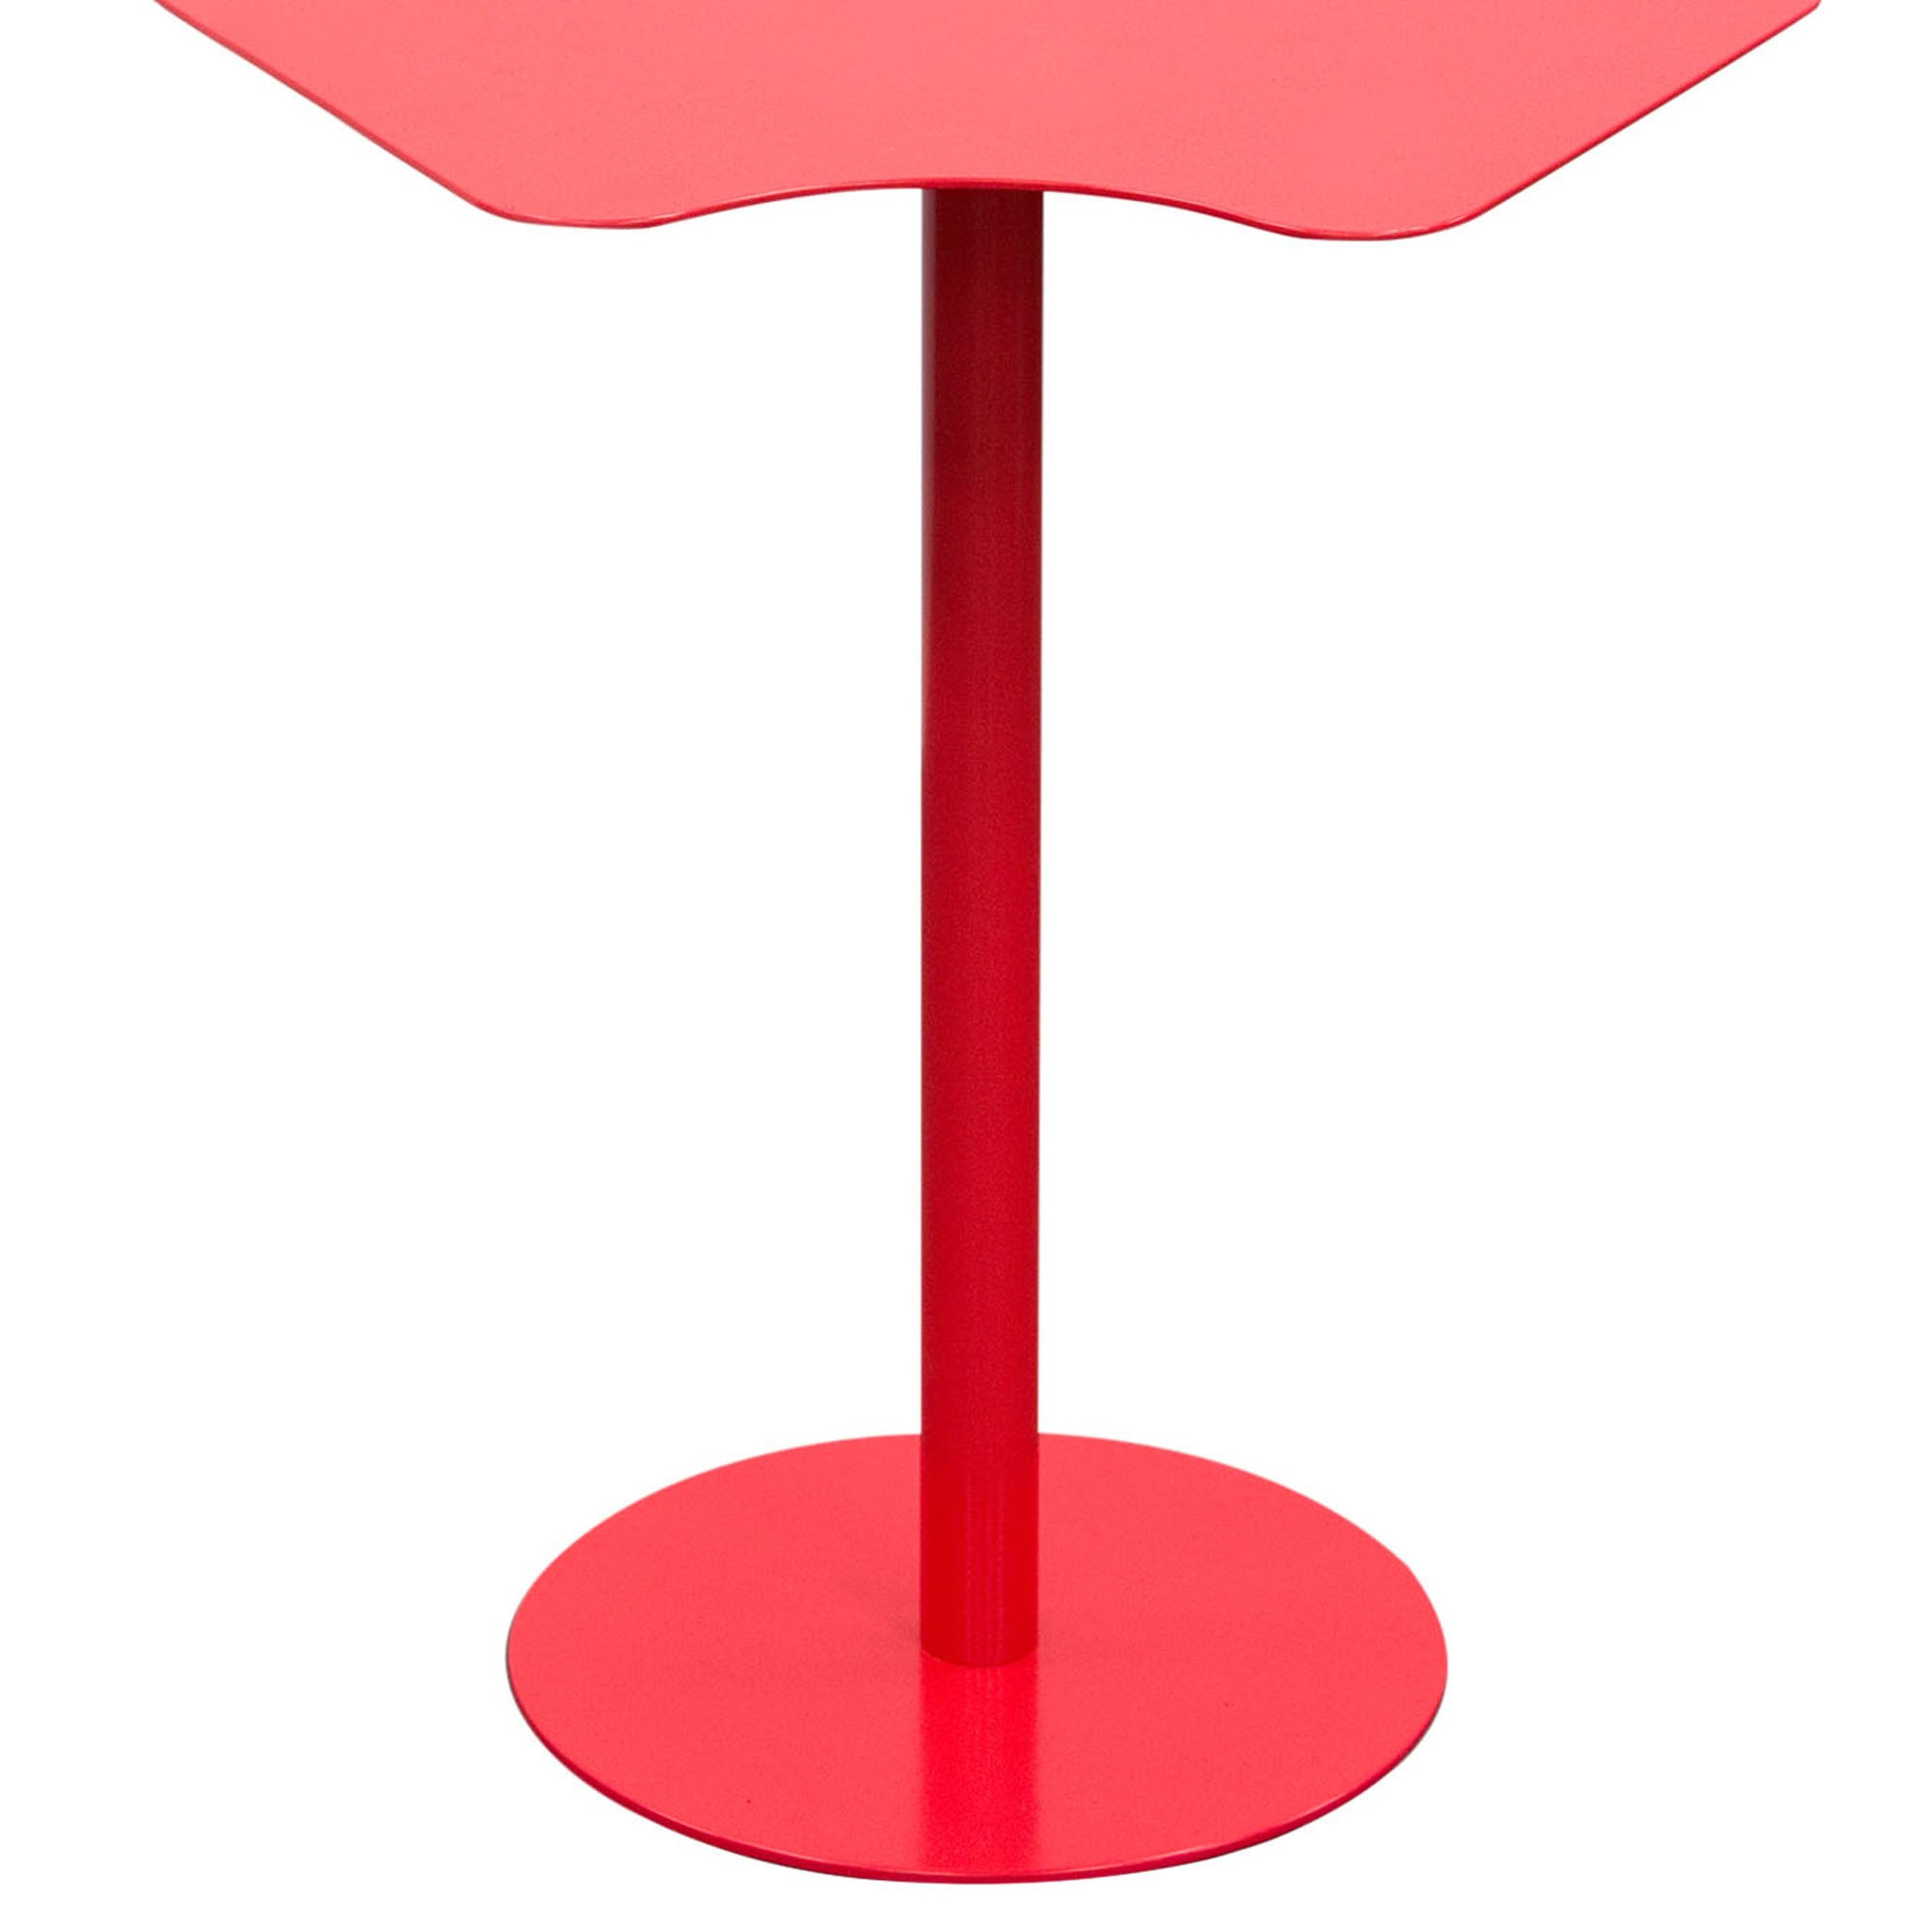 peta powder coated metal accent table matte red finish diamond petaetre more views product description the patio umbrella base glass coffee and end sets decorative accessories for